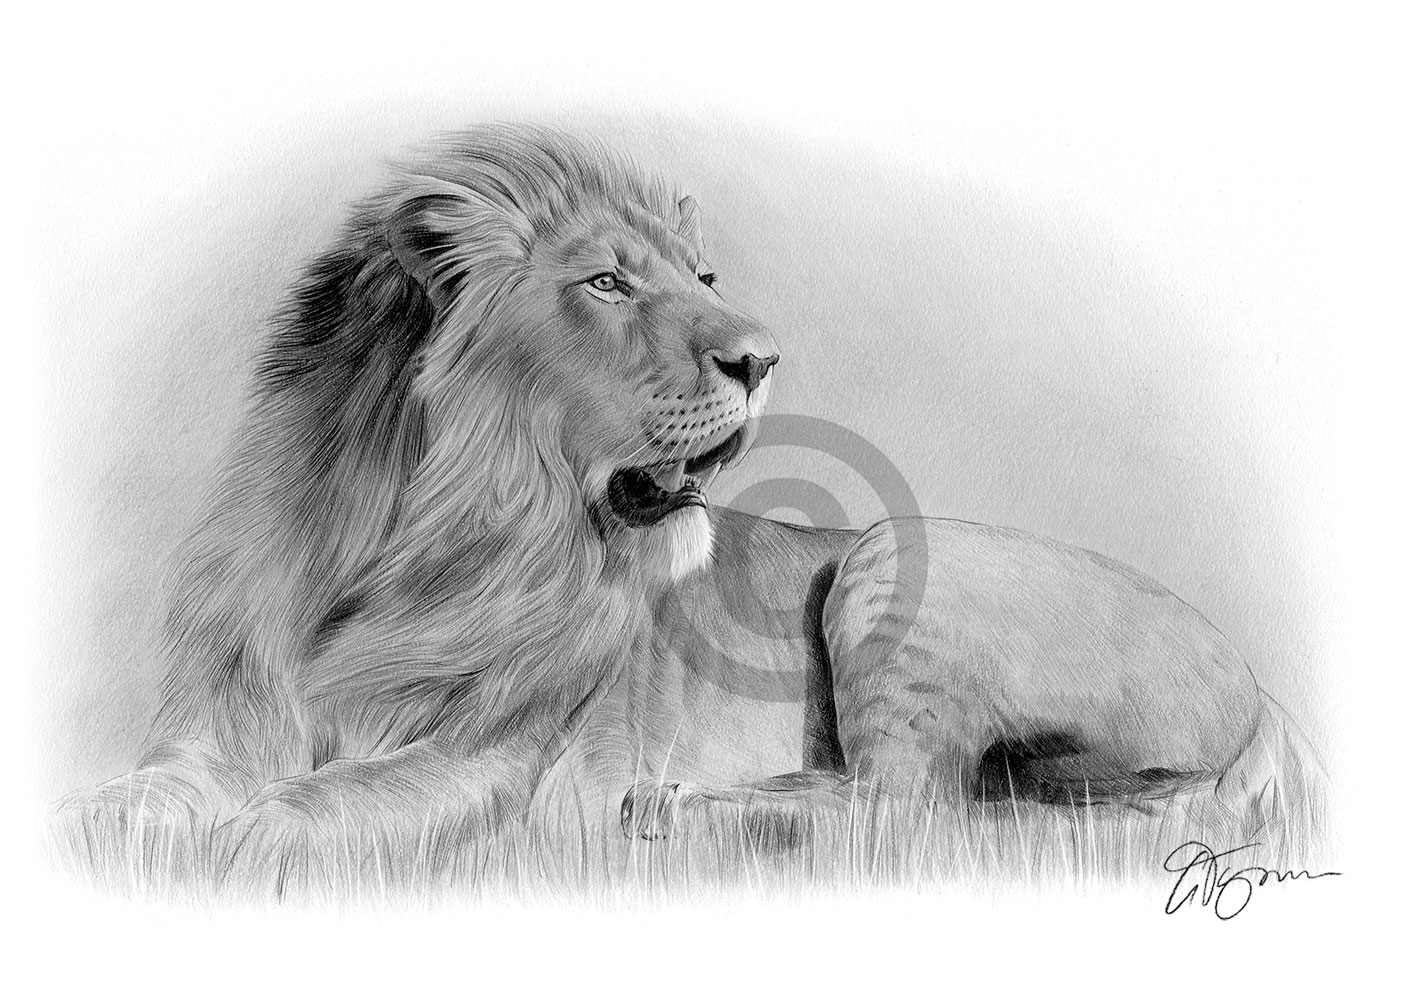 Details about lion pencil drawing art print a4 a3 sizes wildlife artwork by artist g tymon